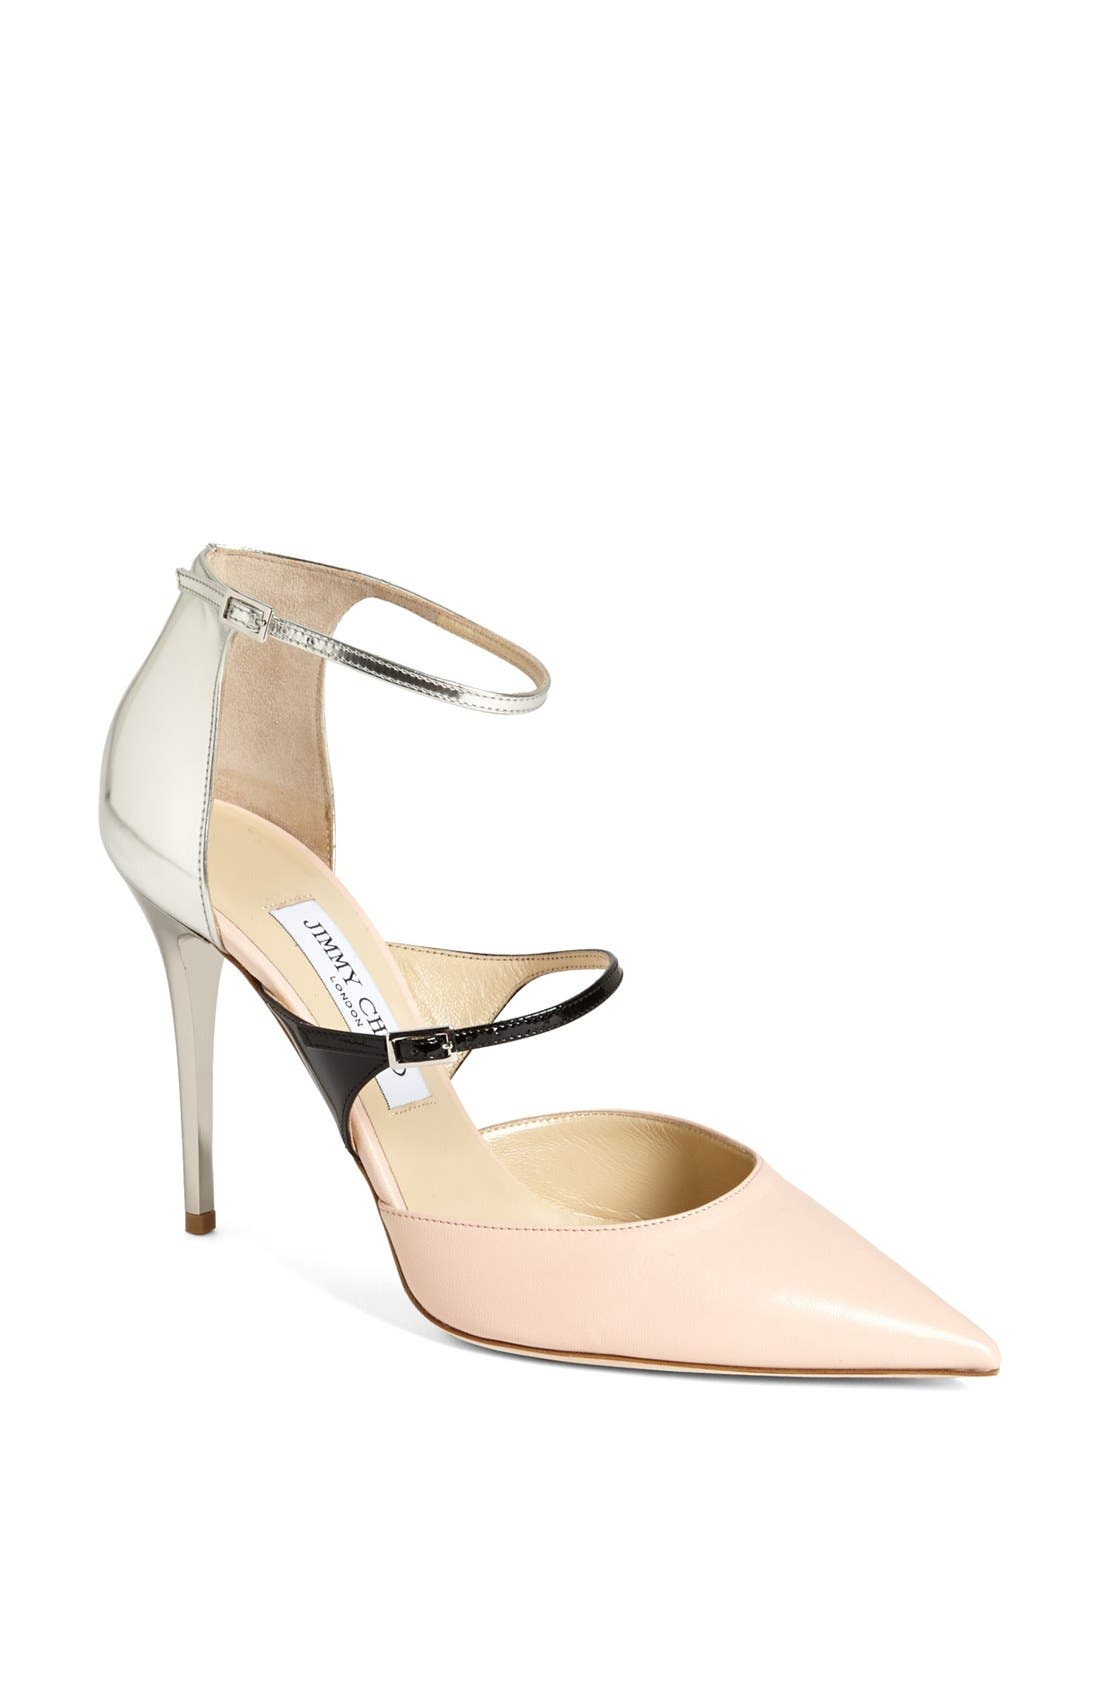 Alternate Image 1 Selected - Jimmy Choo 'Typhoon' Ankle Strap Pump